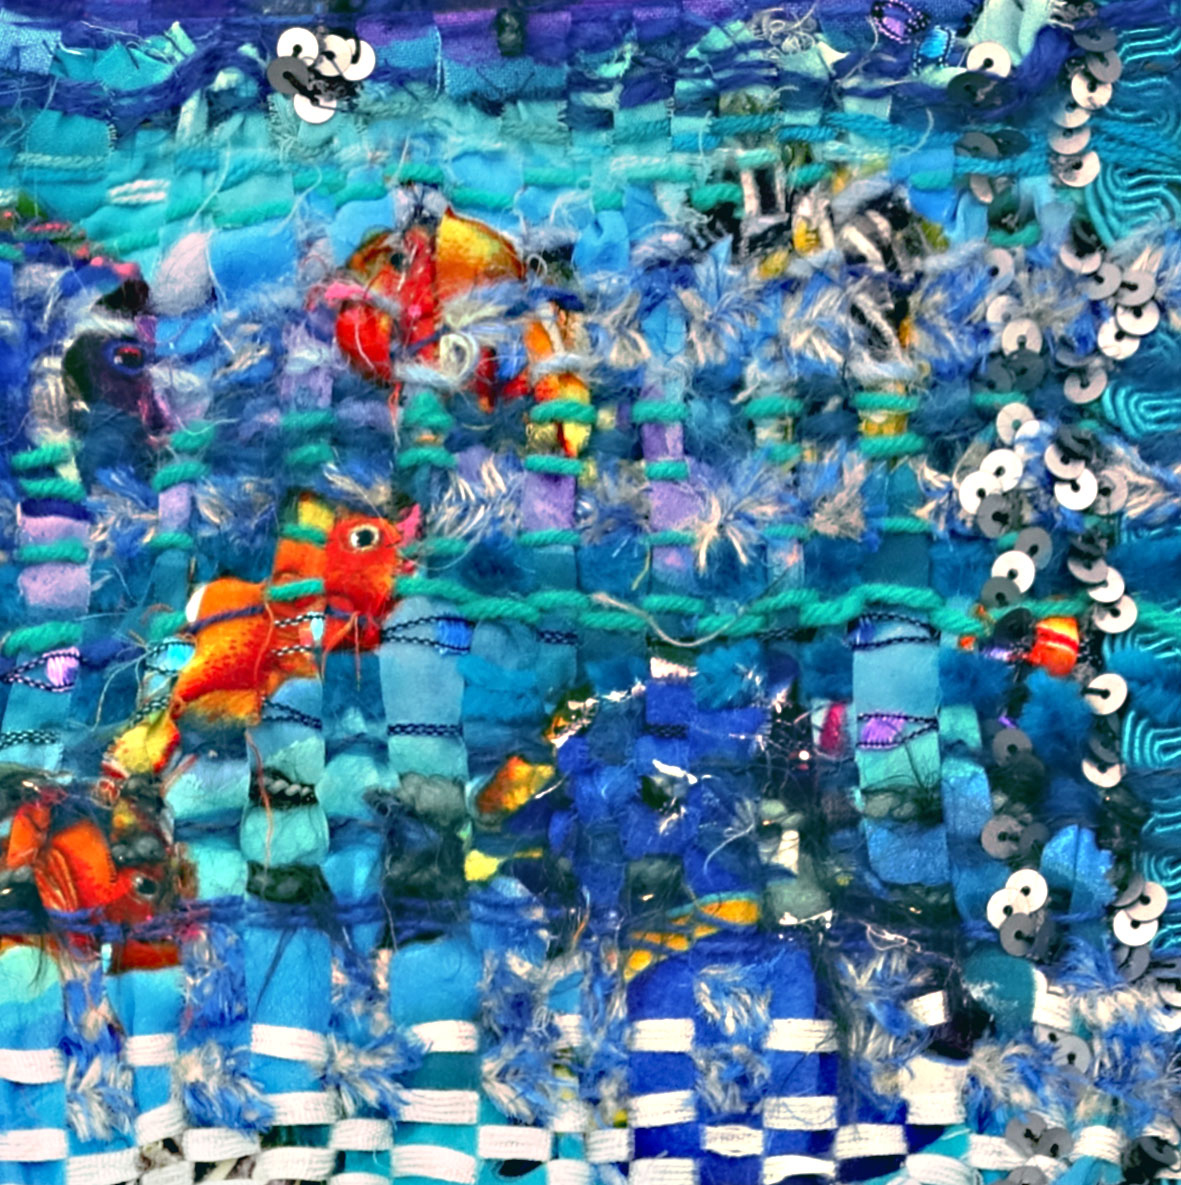 Eva Lippert, Aquarium, detail, weefstuk.